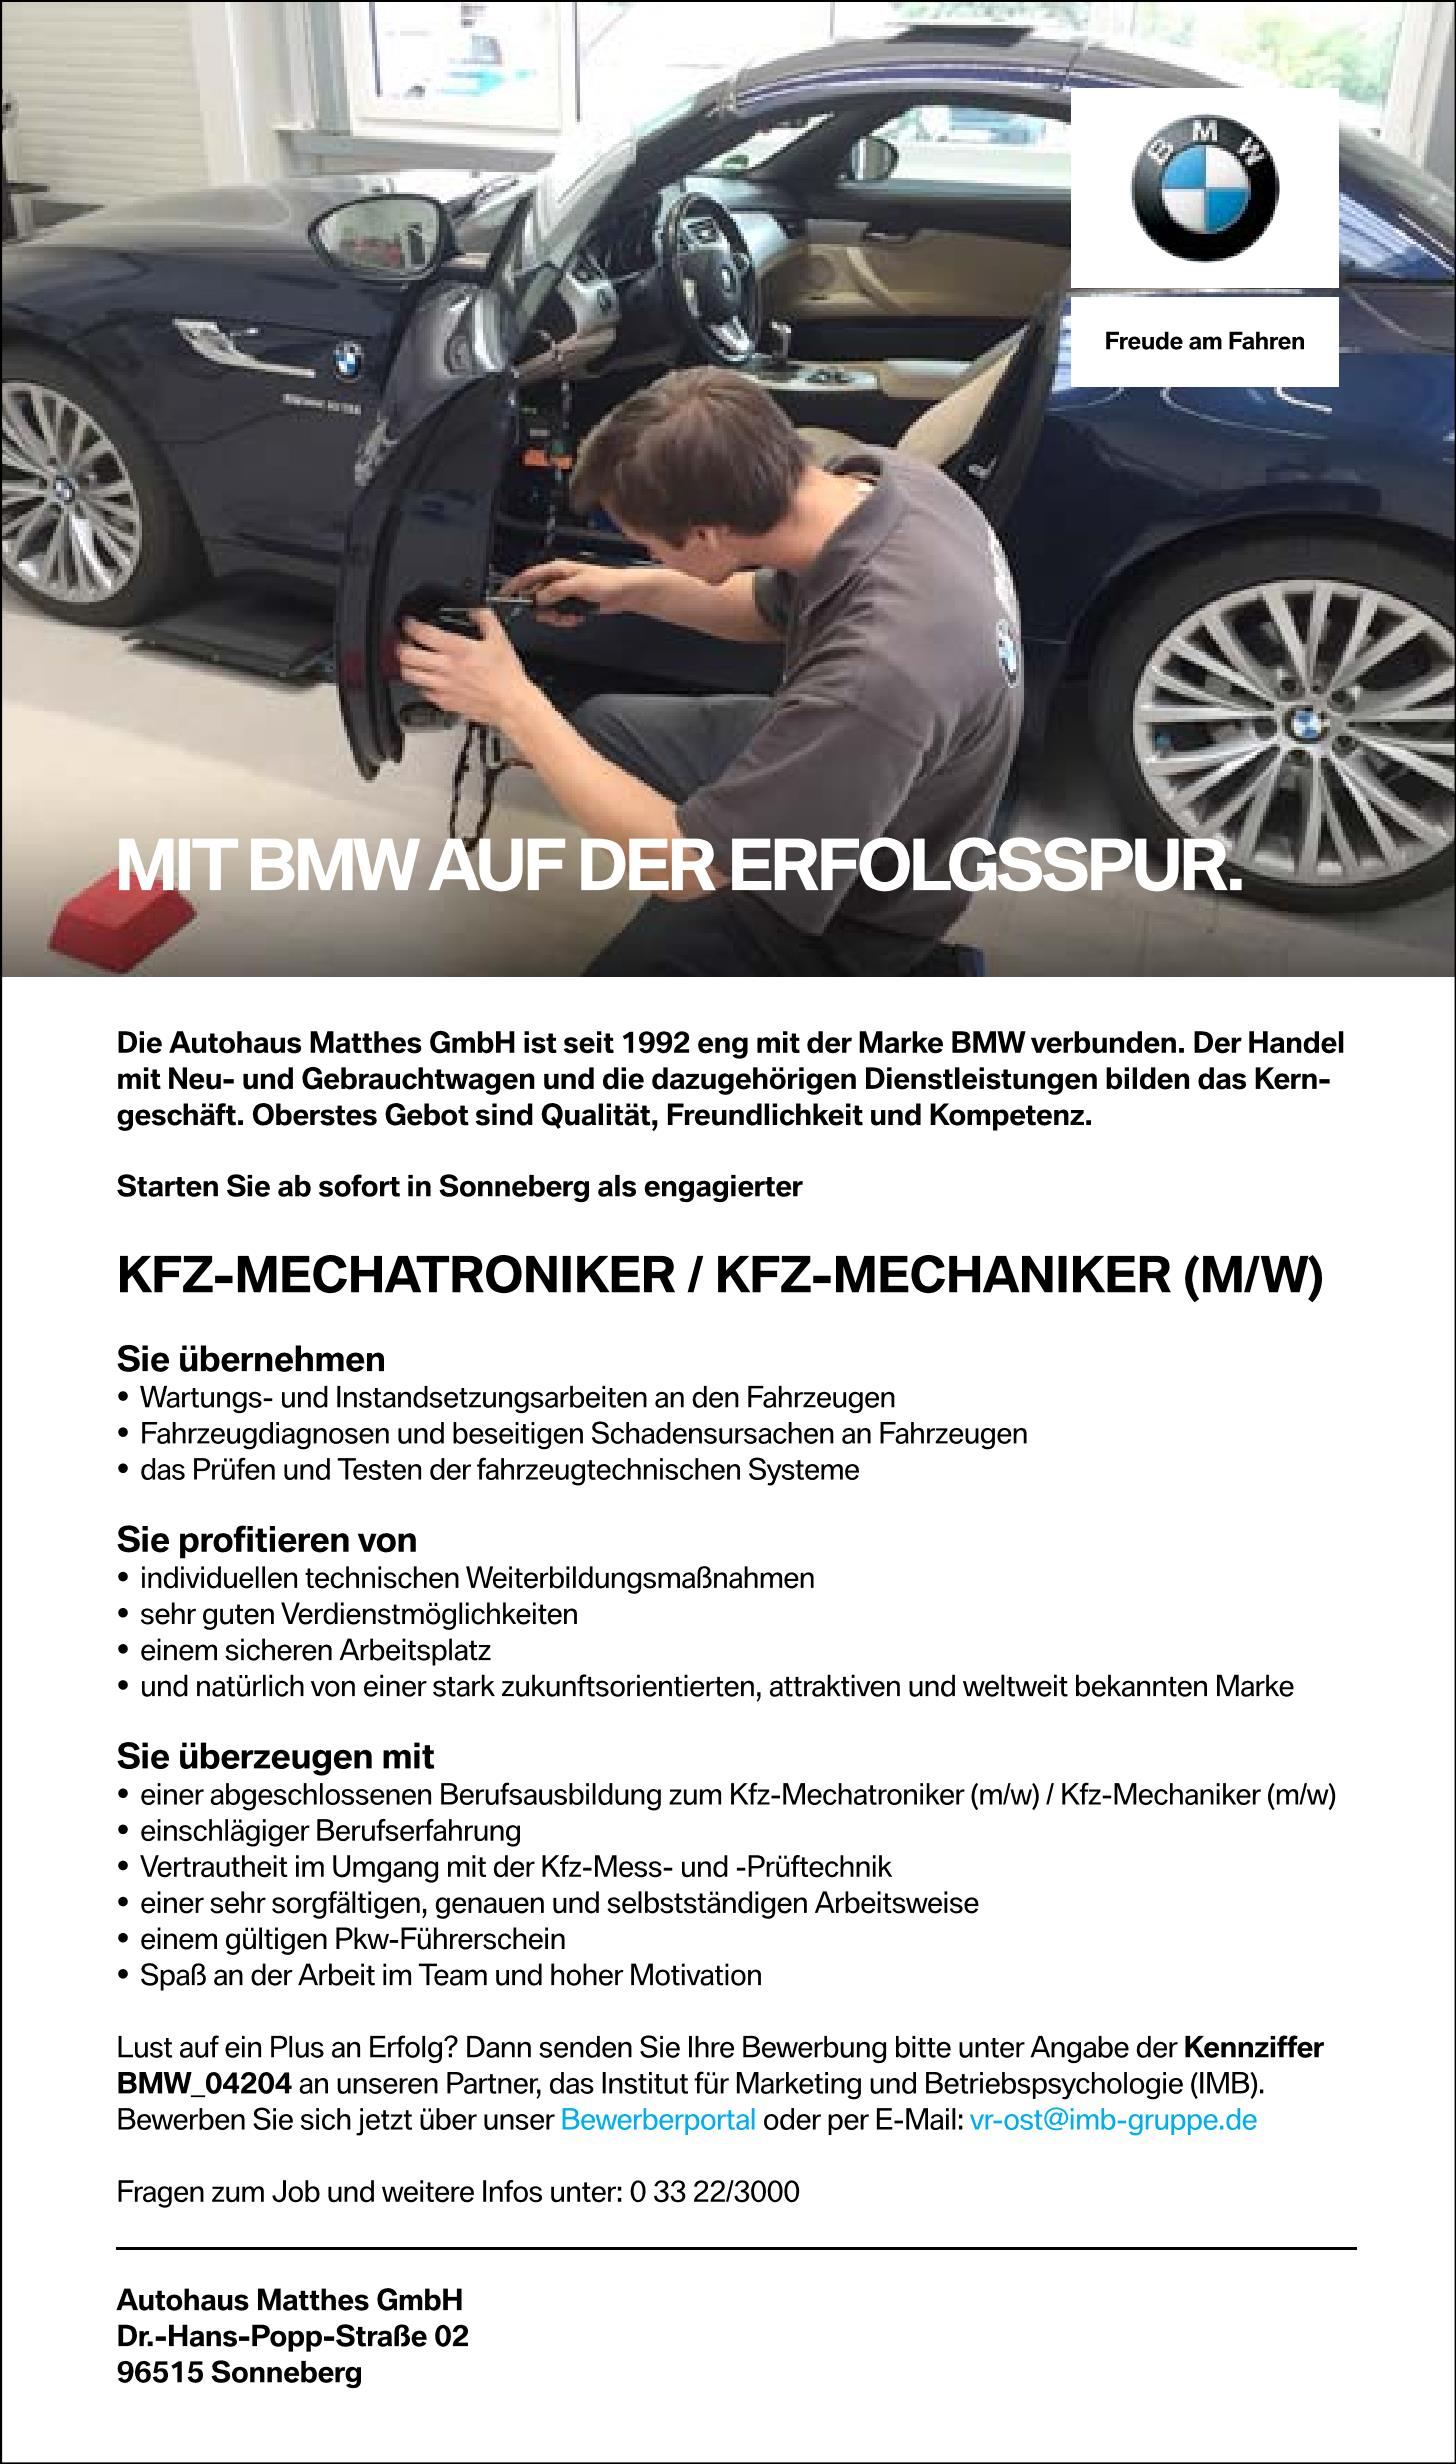 bmw kfz mechatroniker m w autohaus matthes in sonneberg. Black Bedroom Furniture Sets. Home Design Ideas